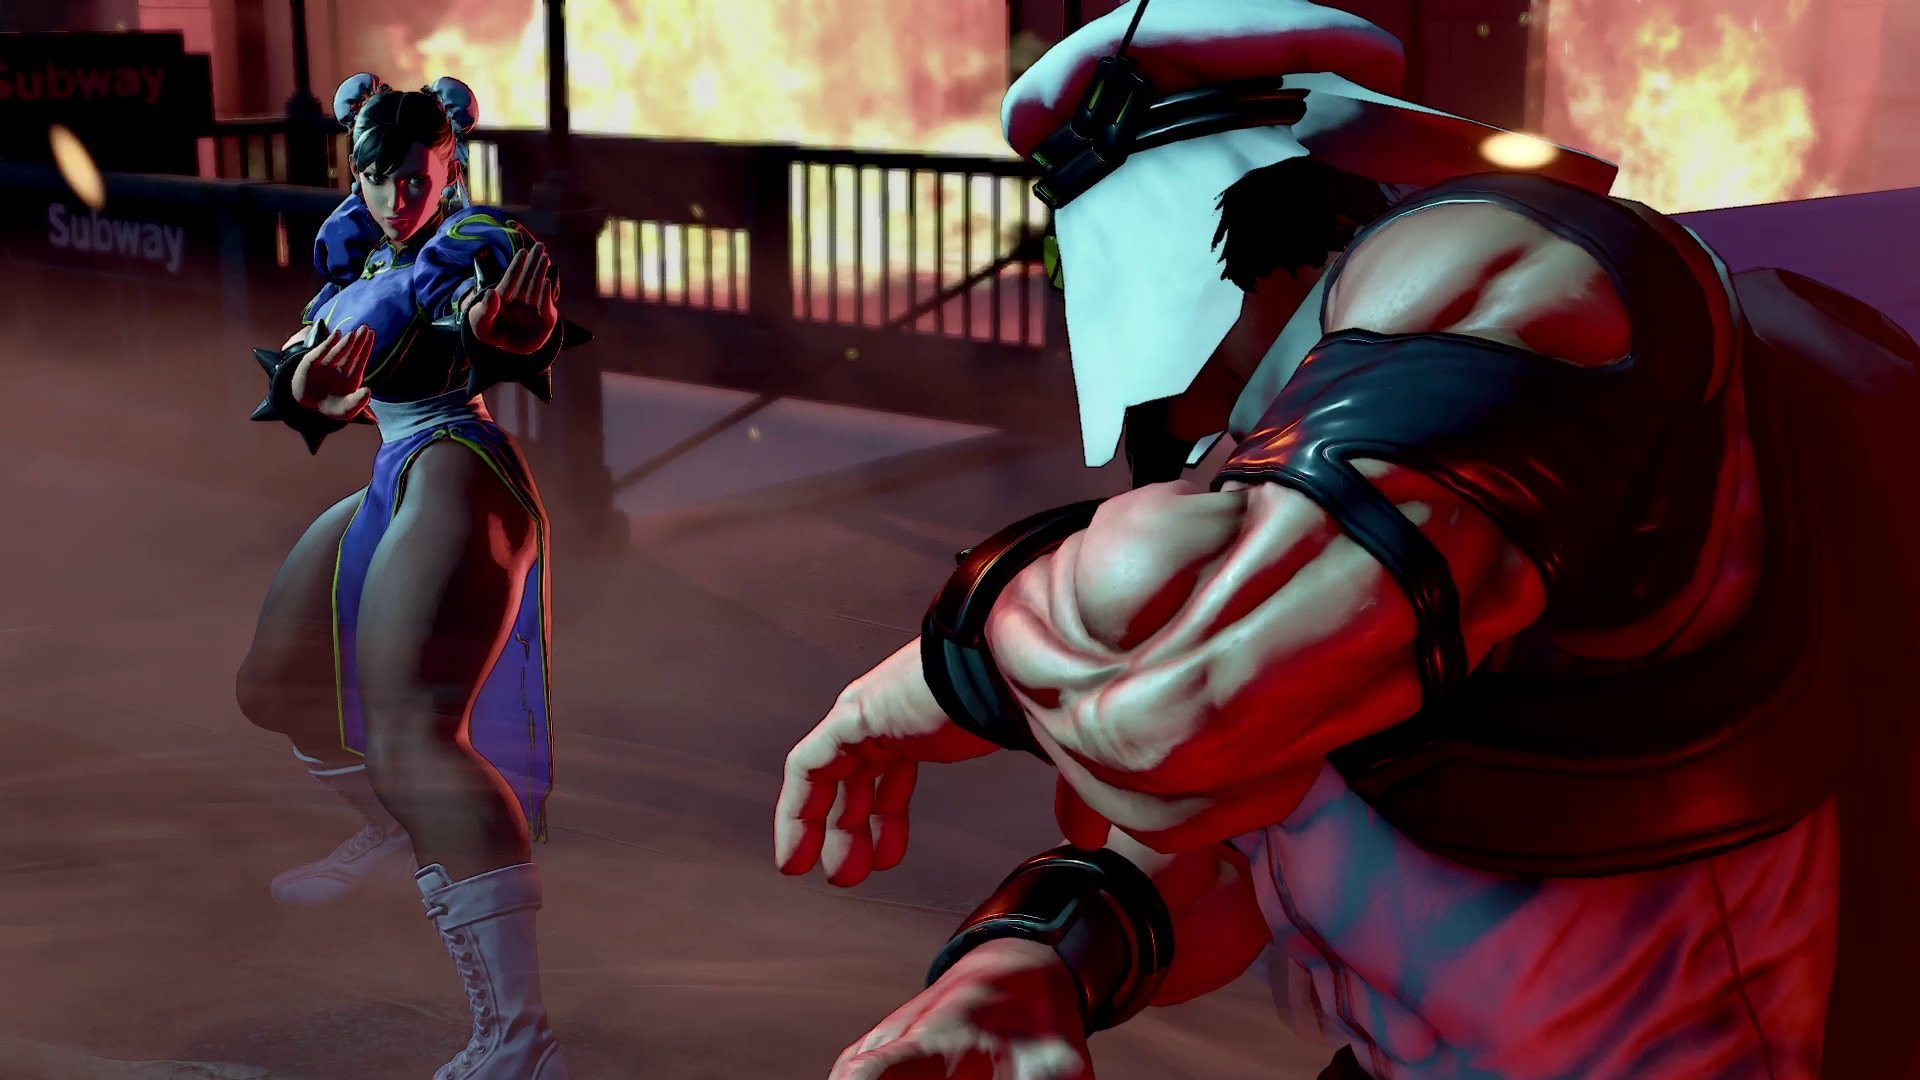 Free Download Street Fighter 5 Wallpaper Id 470093 Hd 1080p For Pc